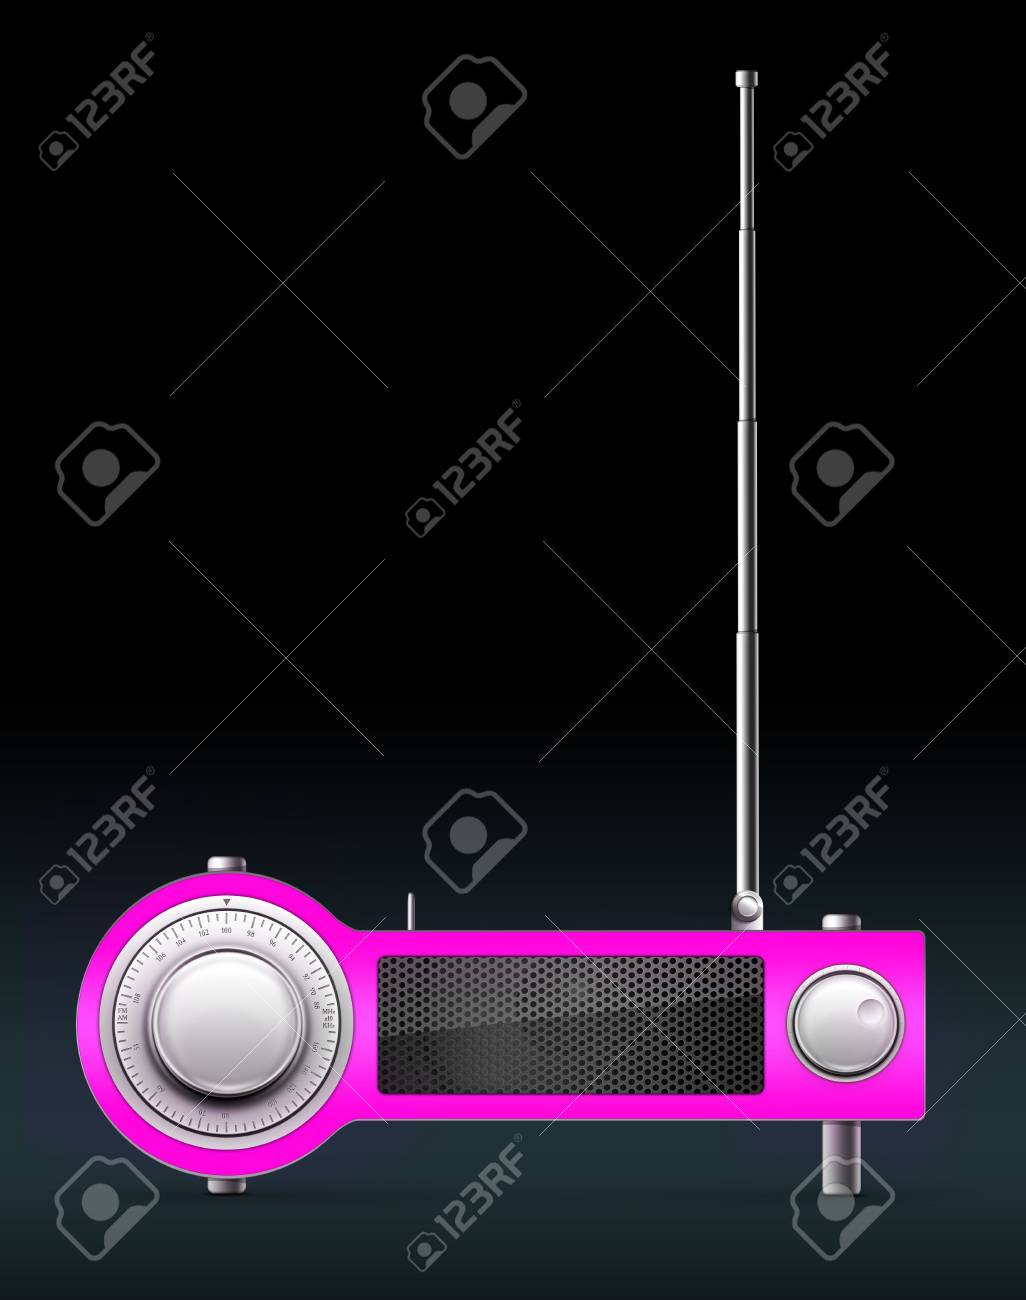 Old Style Radio on the background. Computer Designe, 2D Graphics Stock Photo - 5887144